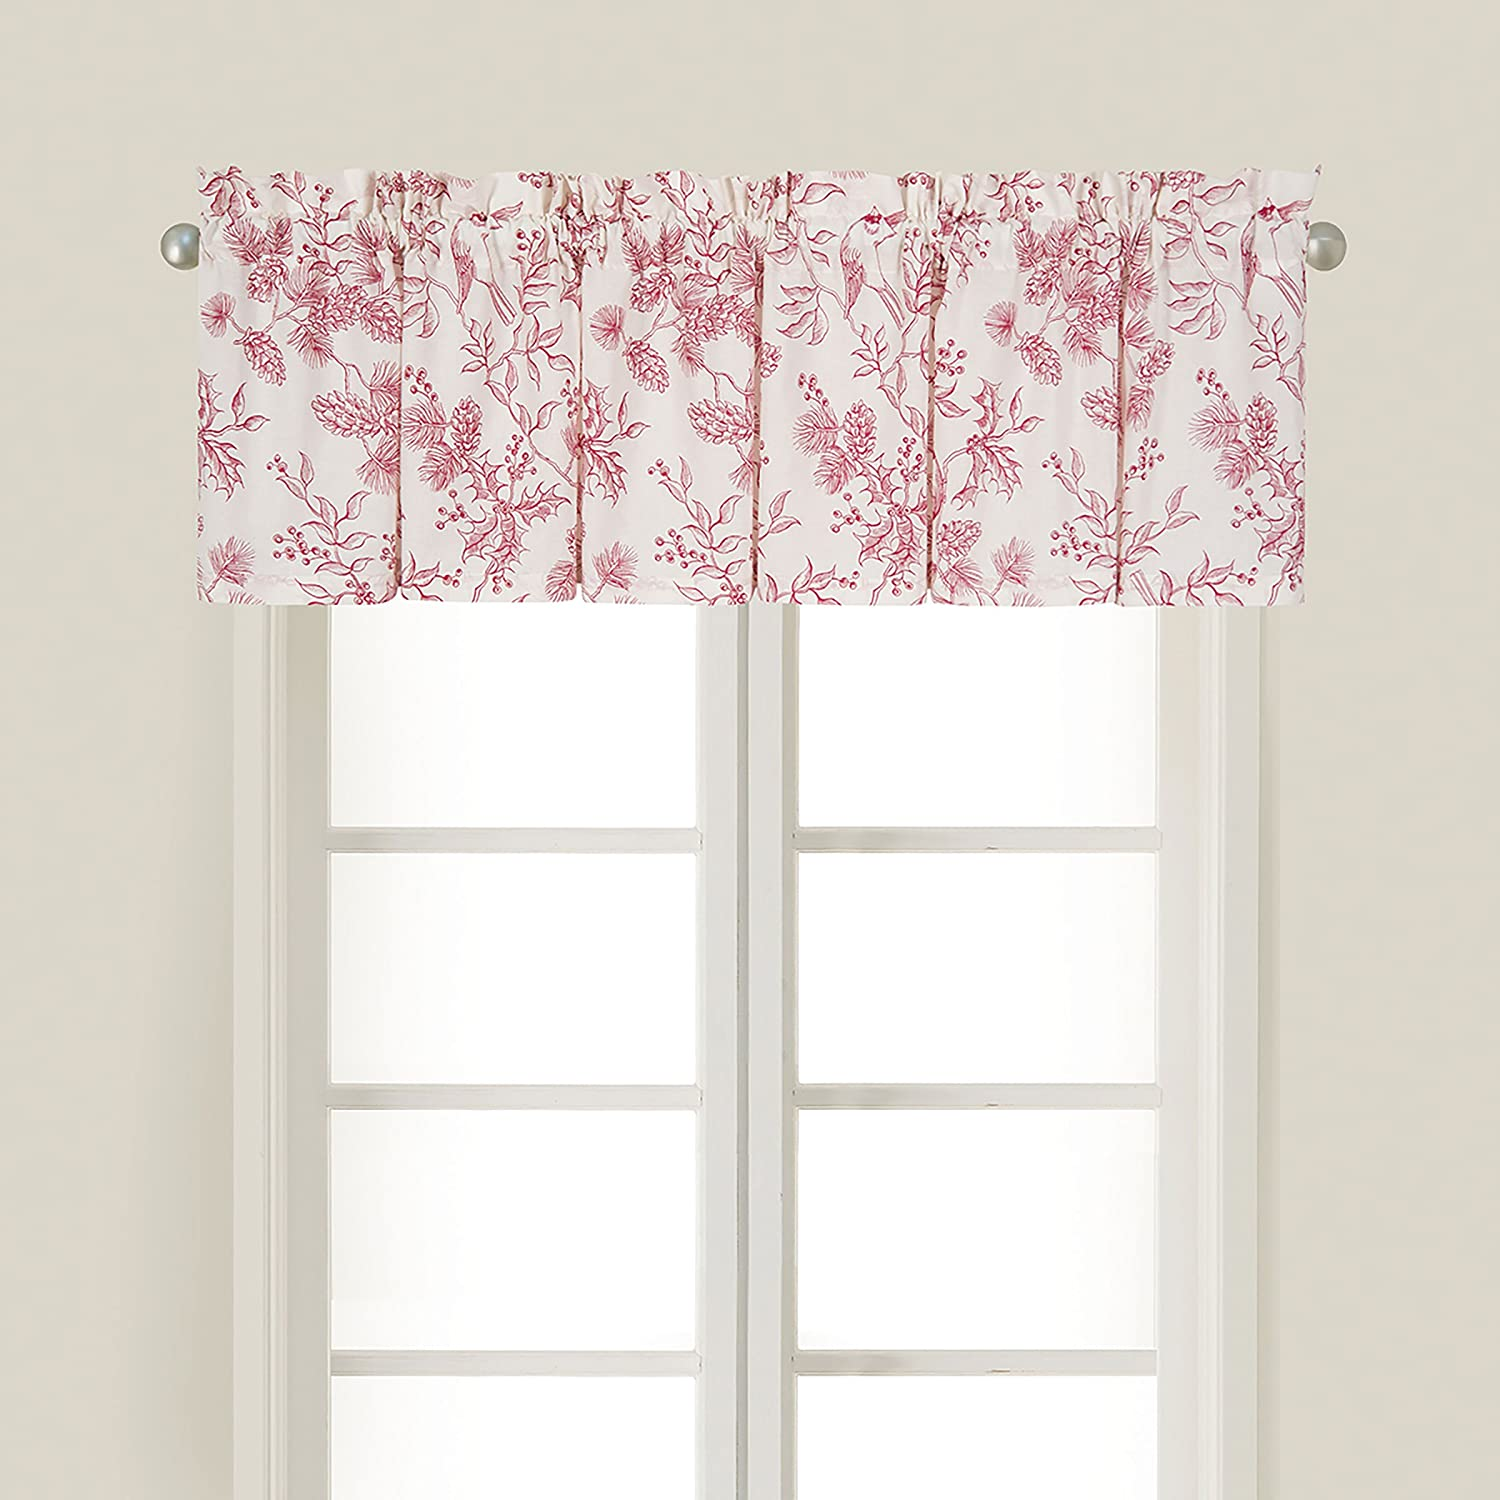 C&F Home 15.5x72 Inches, Evergreen Toile Valance